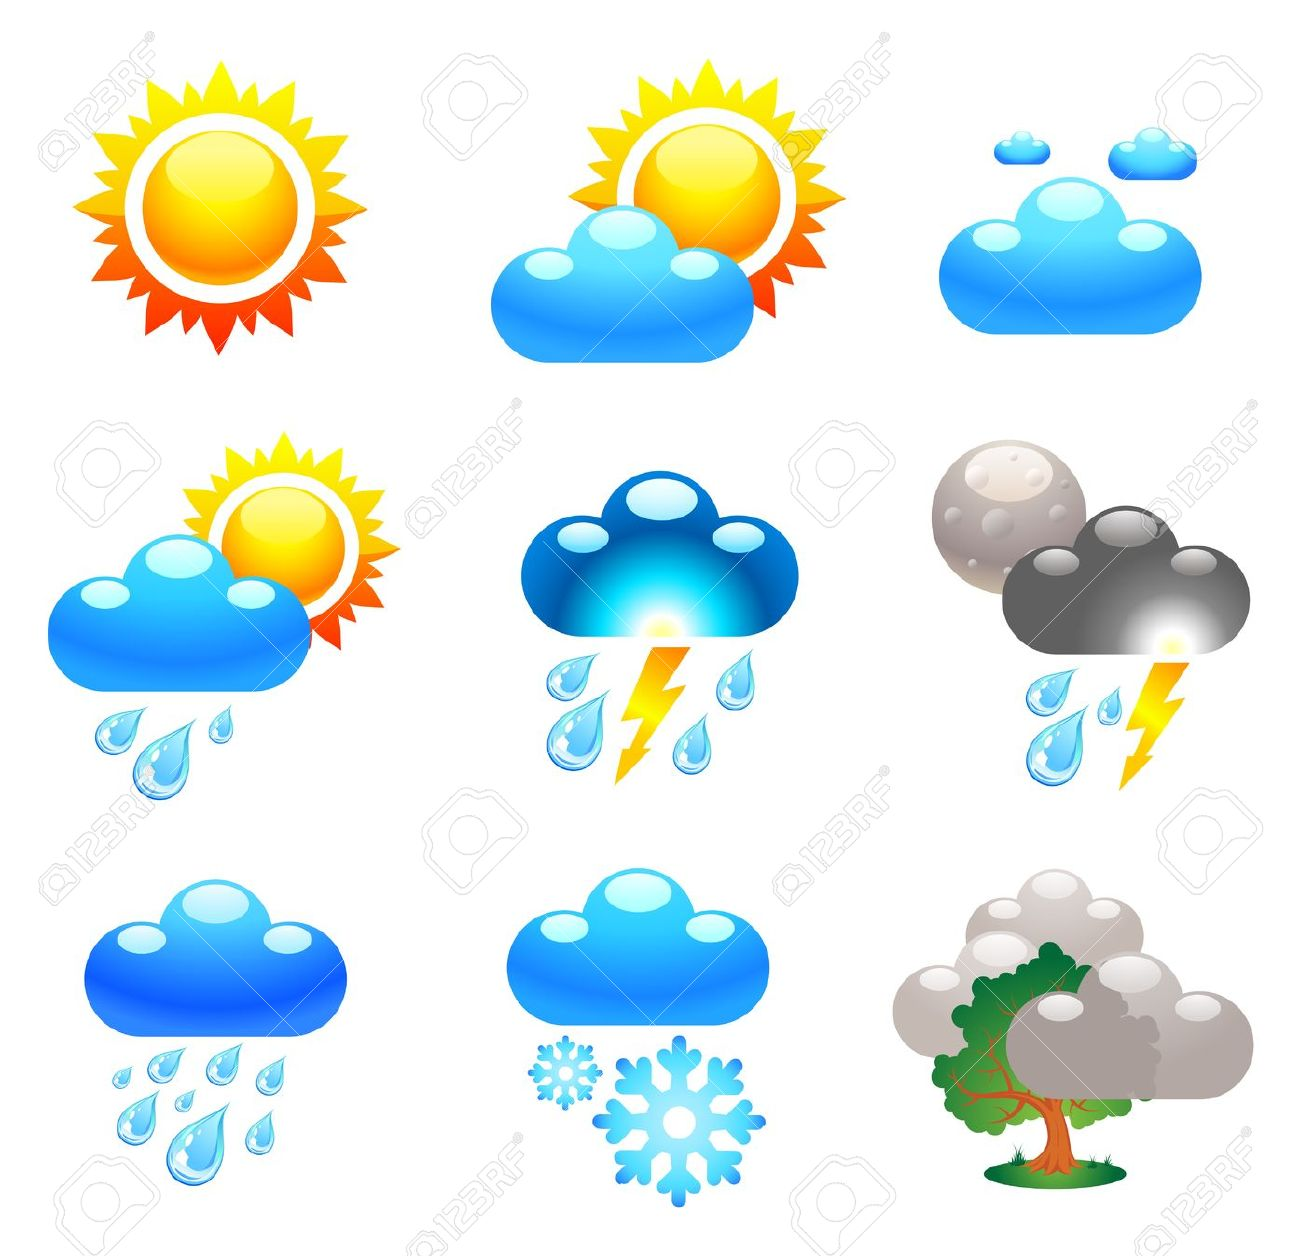 Weather condition clipart.